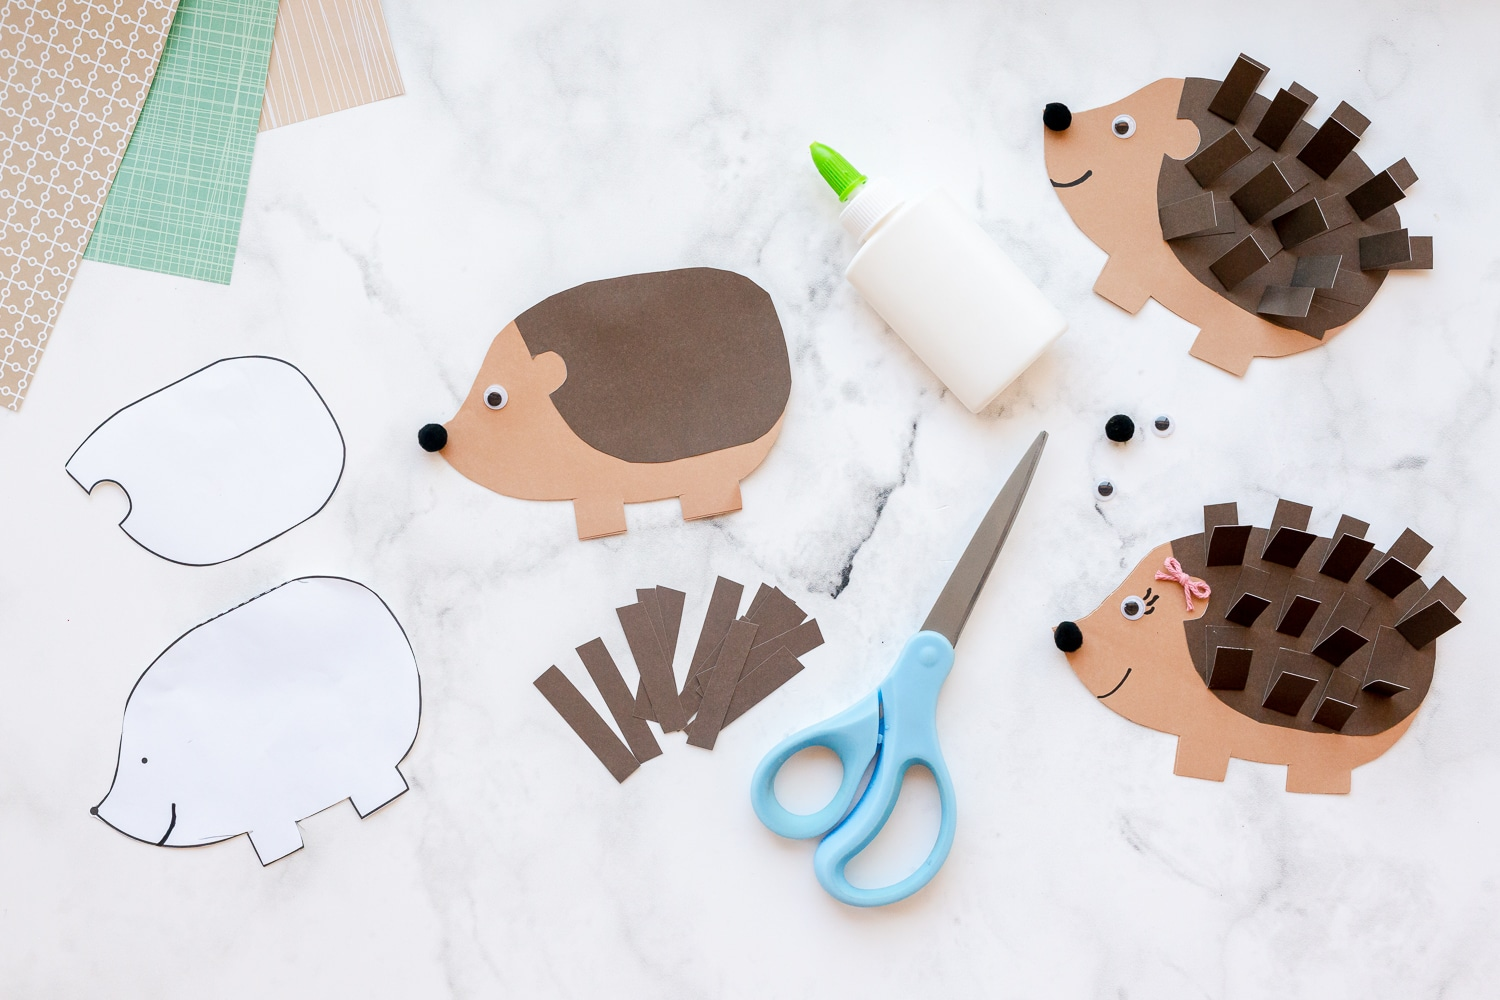 cut out hedgehog template pieces and glue together